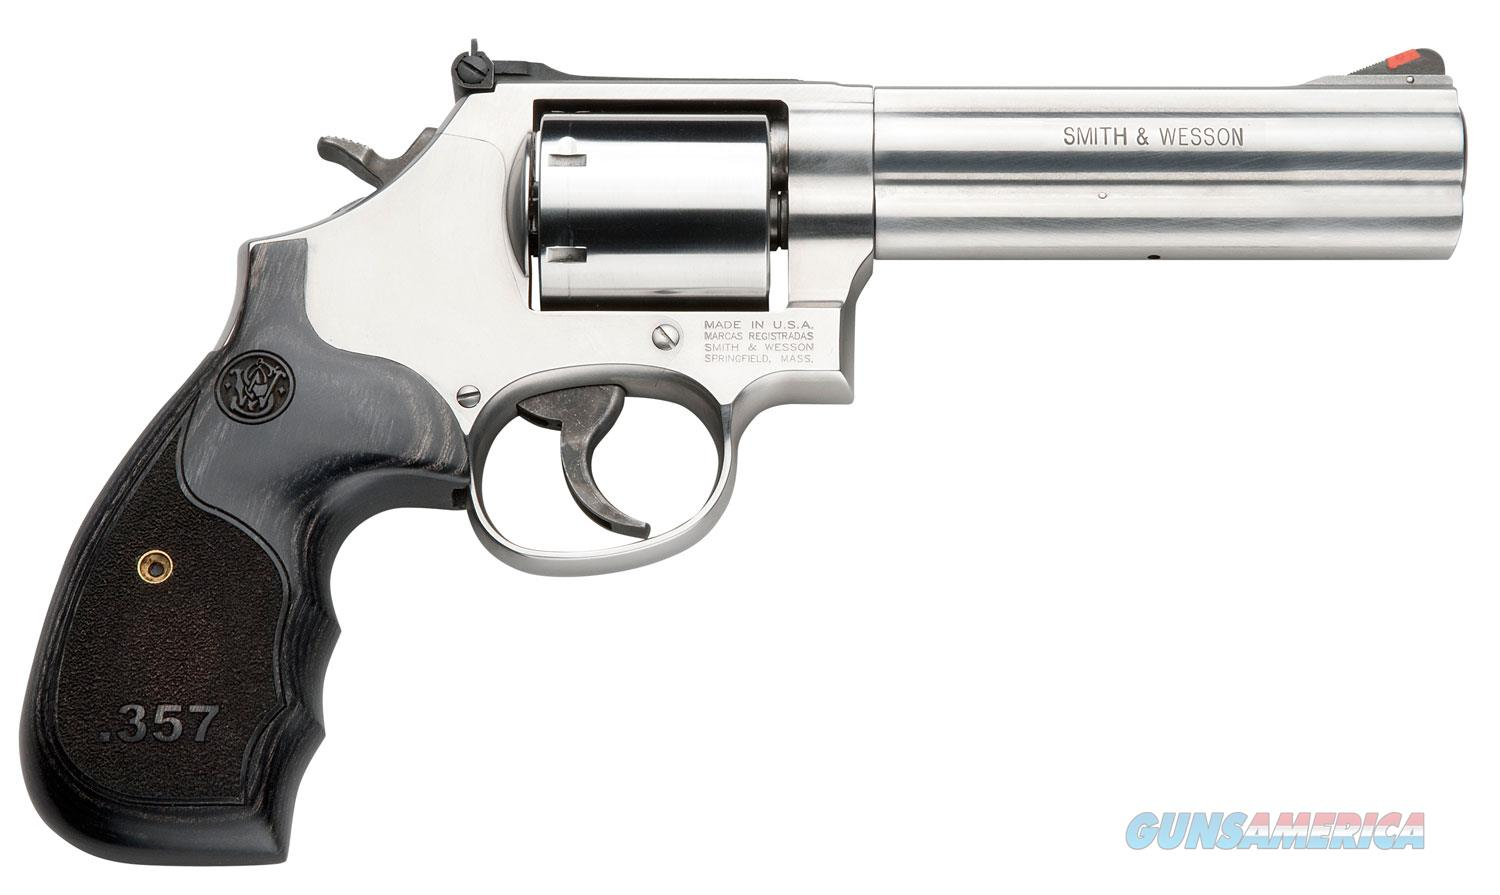 "Smith & Wesson 686 Plus 3-5-7 Magnum 5"" 7 rd - New in Box  Guns > Pistols > Smith & Wesson Revolvers > Full Frame Revolver"